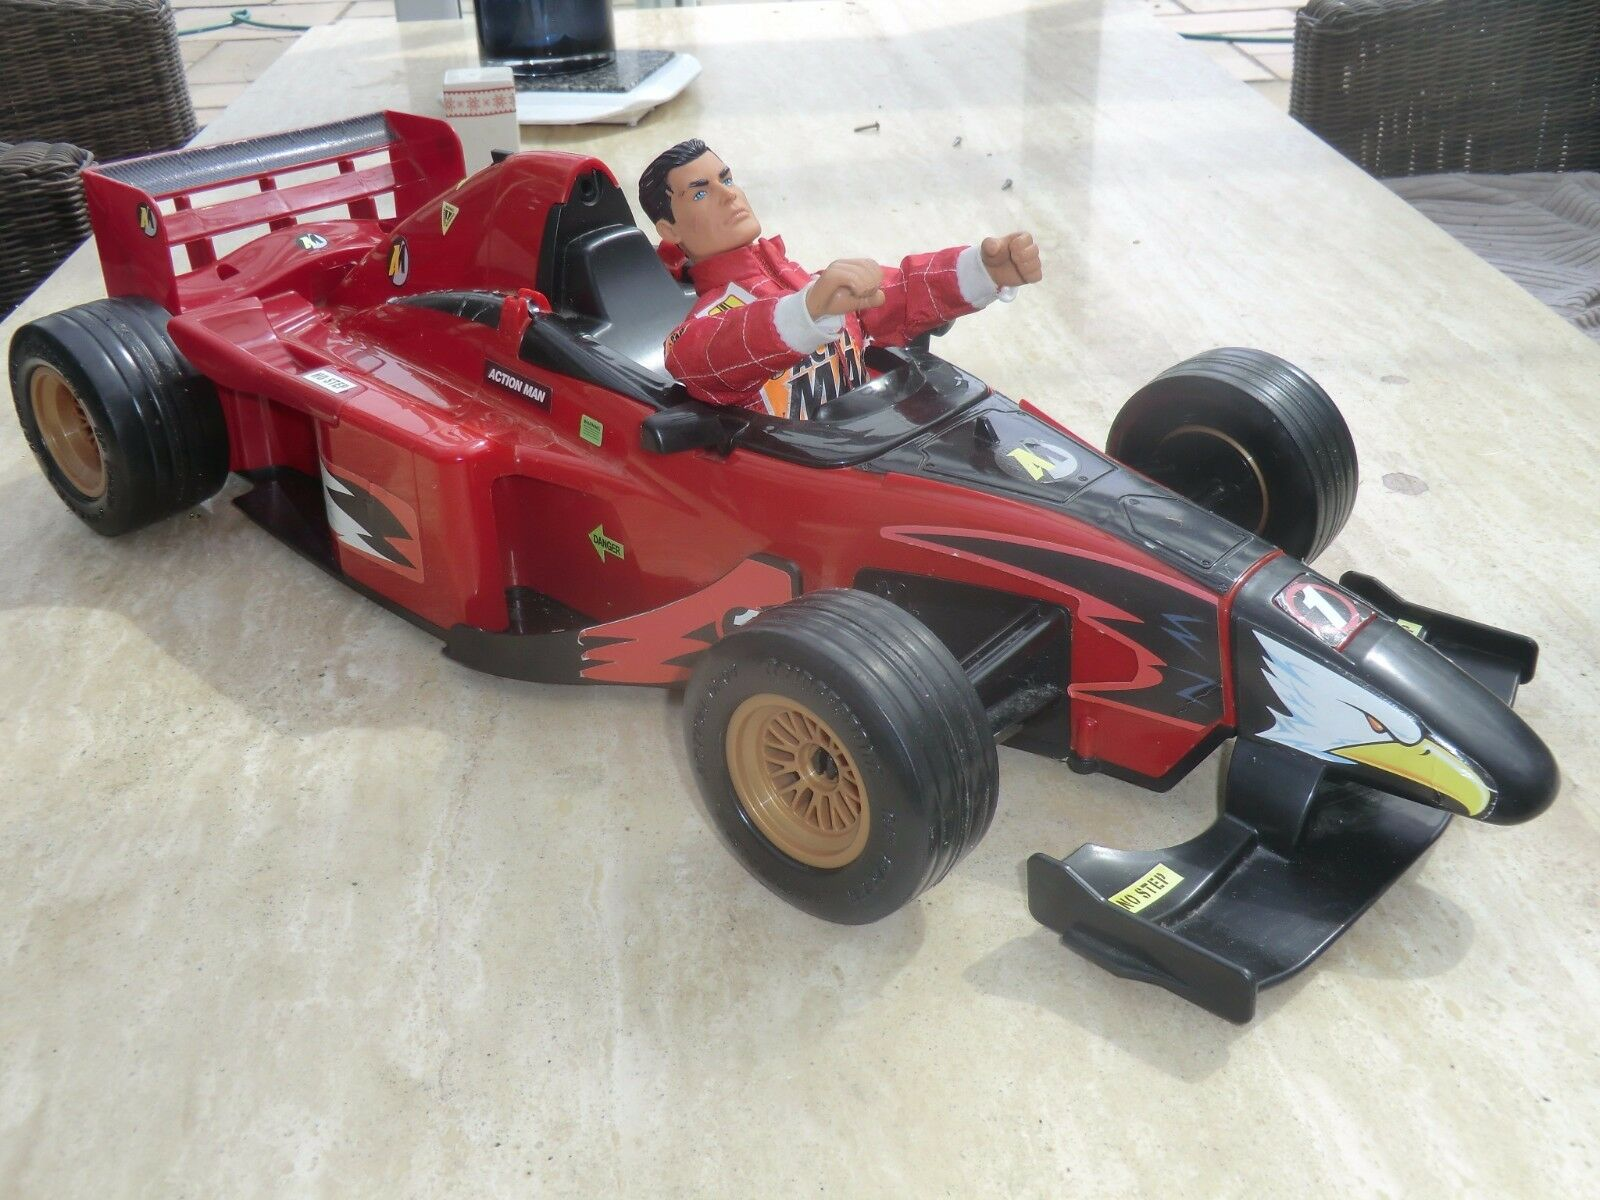 HARSBRO ACTION MAN FIGURE AND   FERRARI  RACING CAR      ( WITH SOUND EFFECTS )